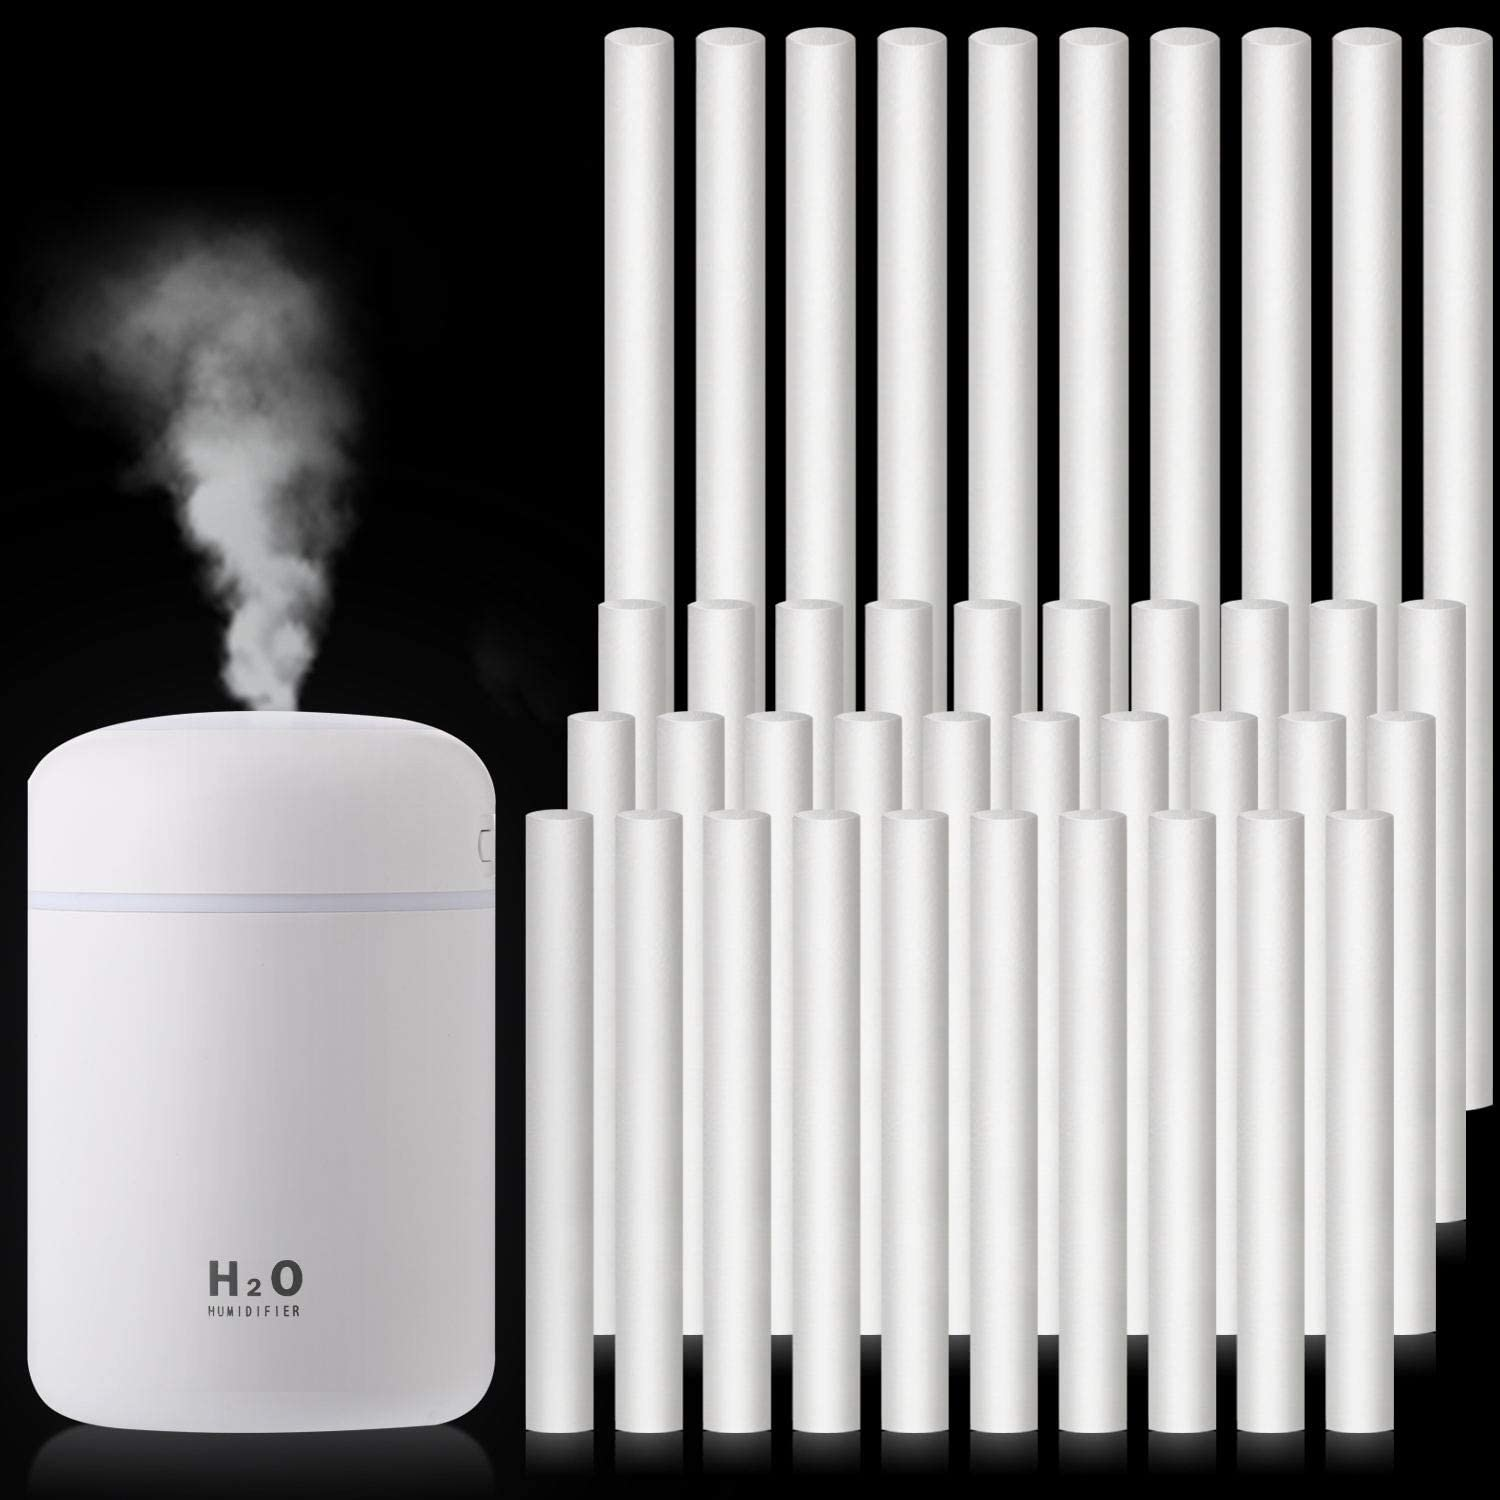 40 Pieces Humidifier Sticks Cotton Filter Refill Sticks Wicks Replacement for Portable Personal USB Powered Humidifiers in Office Home Bedroom, 2 Sizes